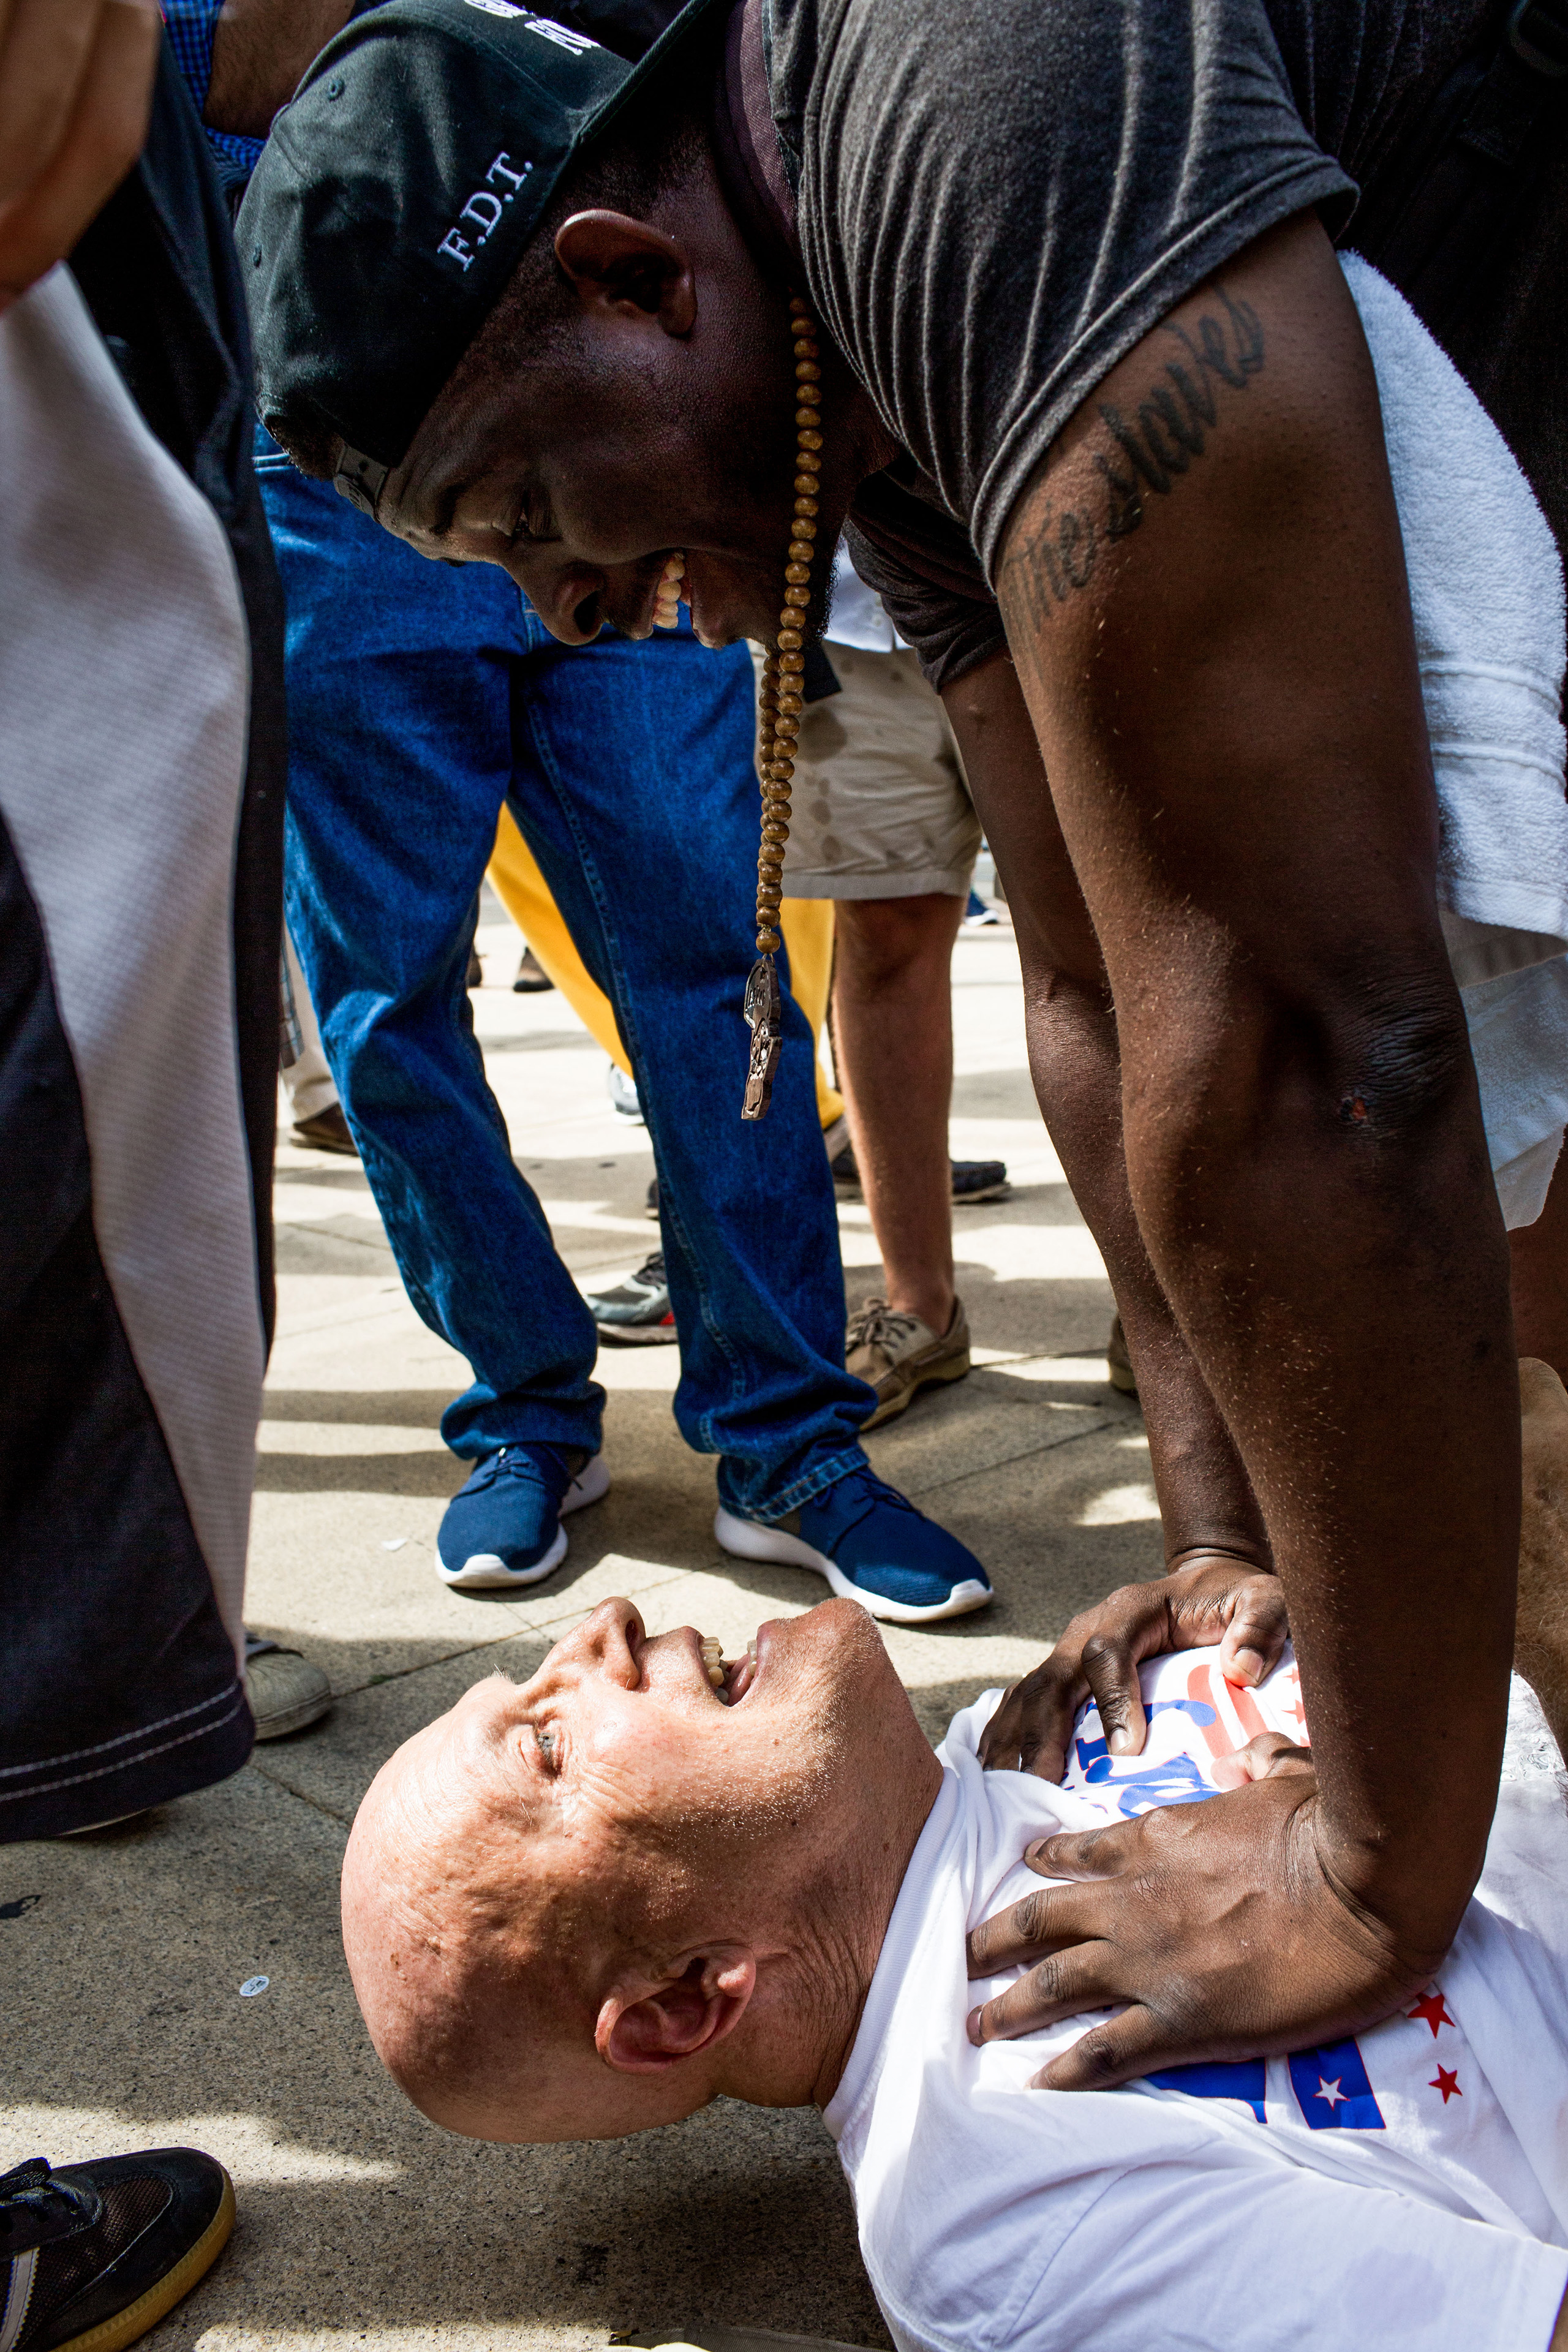 A man accused of assaulting a protestor is held down by another protestor until police arrive. Protesters convened at City Hall in Philadelphia on Tuesday afternoon to watch speaker Jill Stein and protest theDemocratic National Convention at the Wells Fargo Center on July 26, 2016.